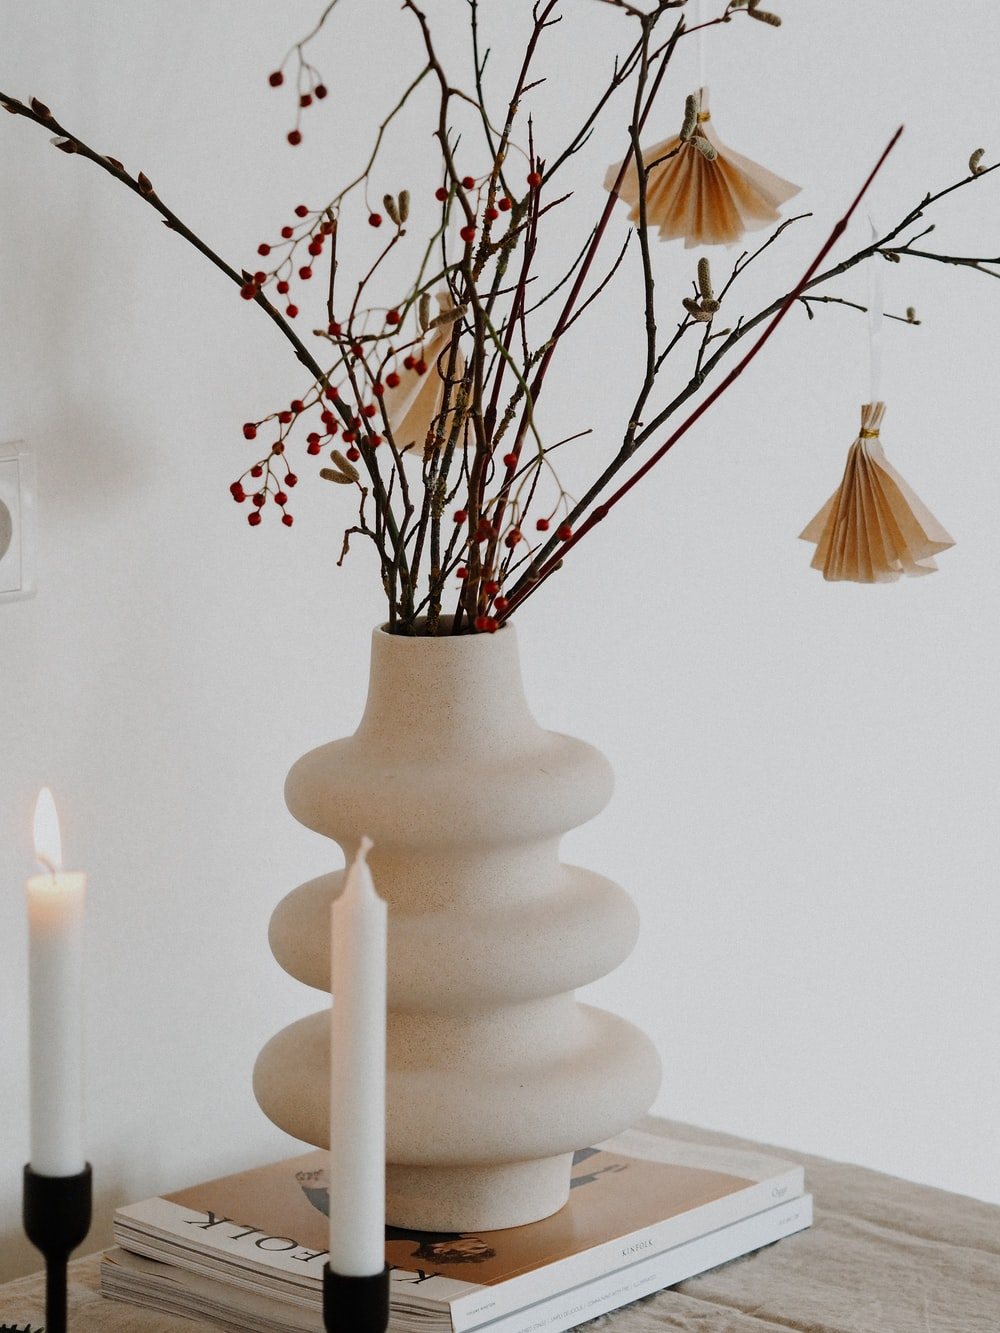 white ceramic vase with candles